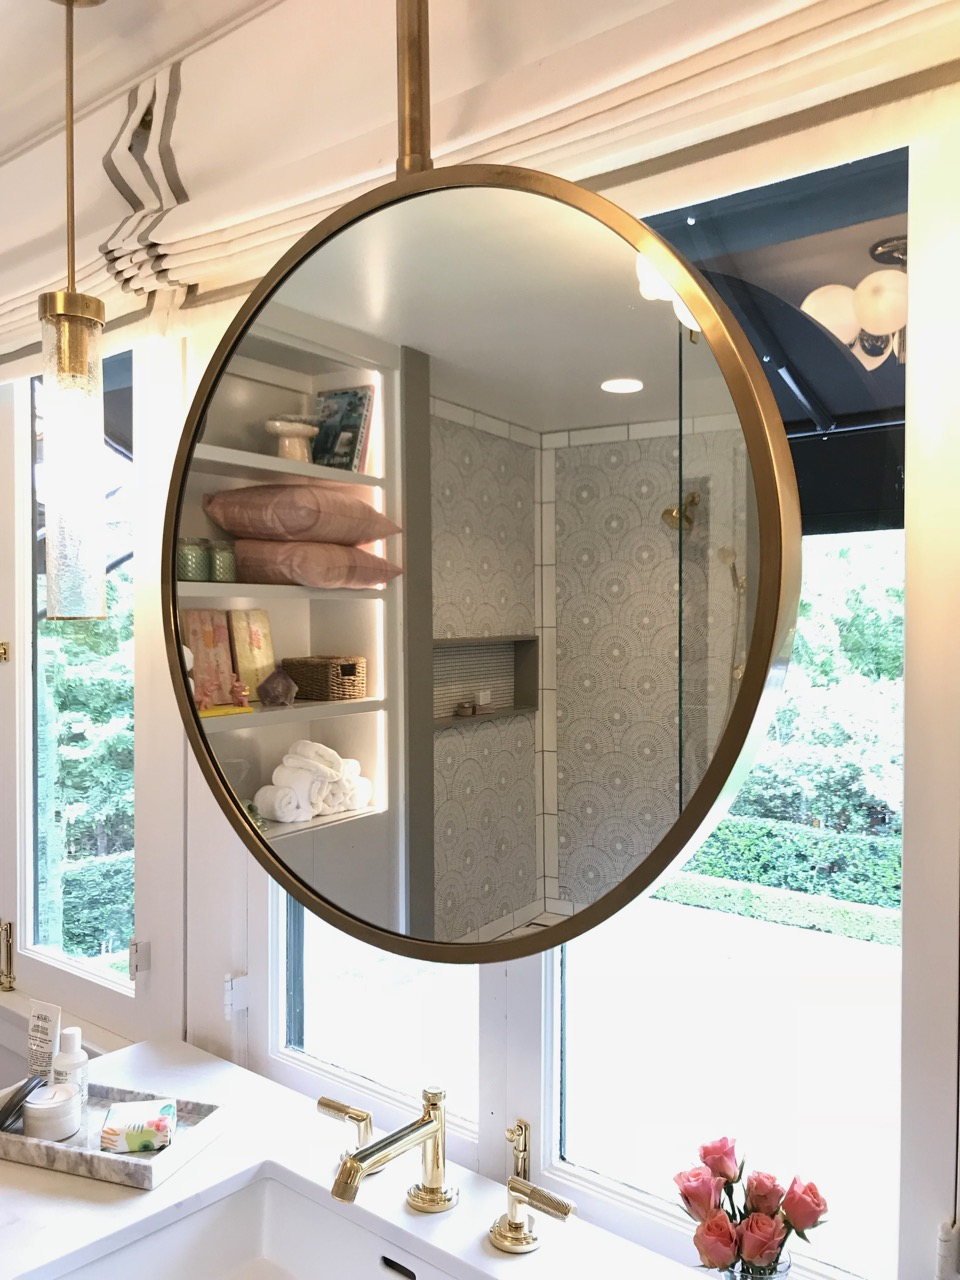 custom mirror in front of window - Jeanne K Chung | Cozy Stylish Chic